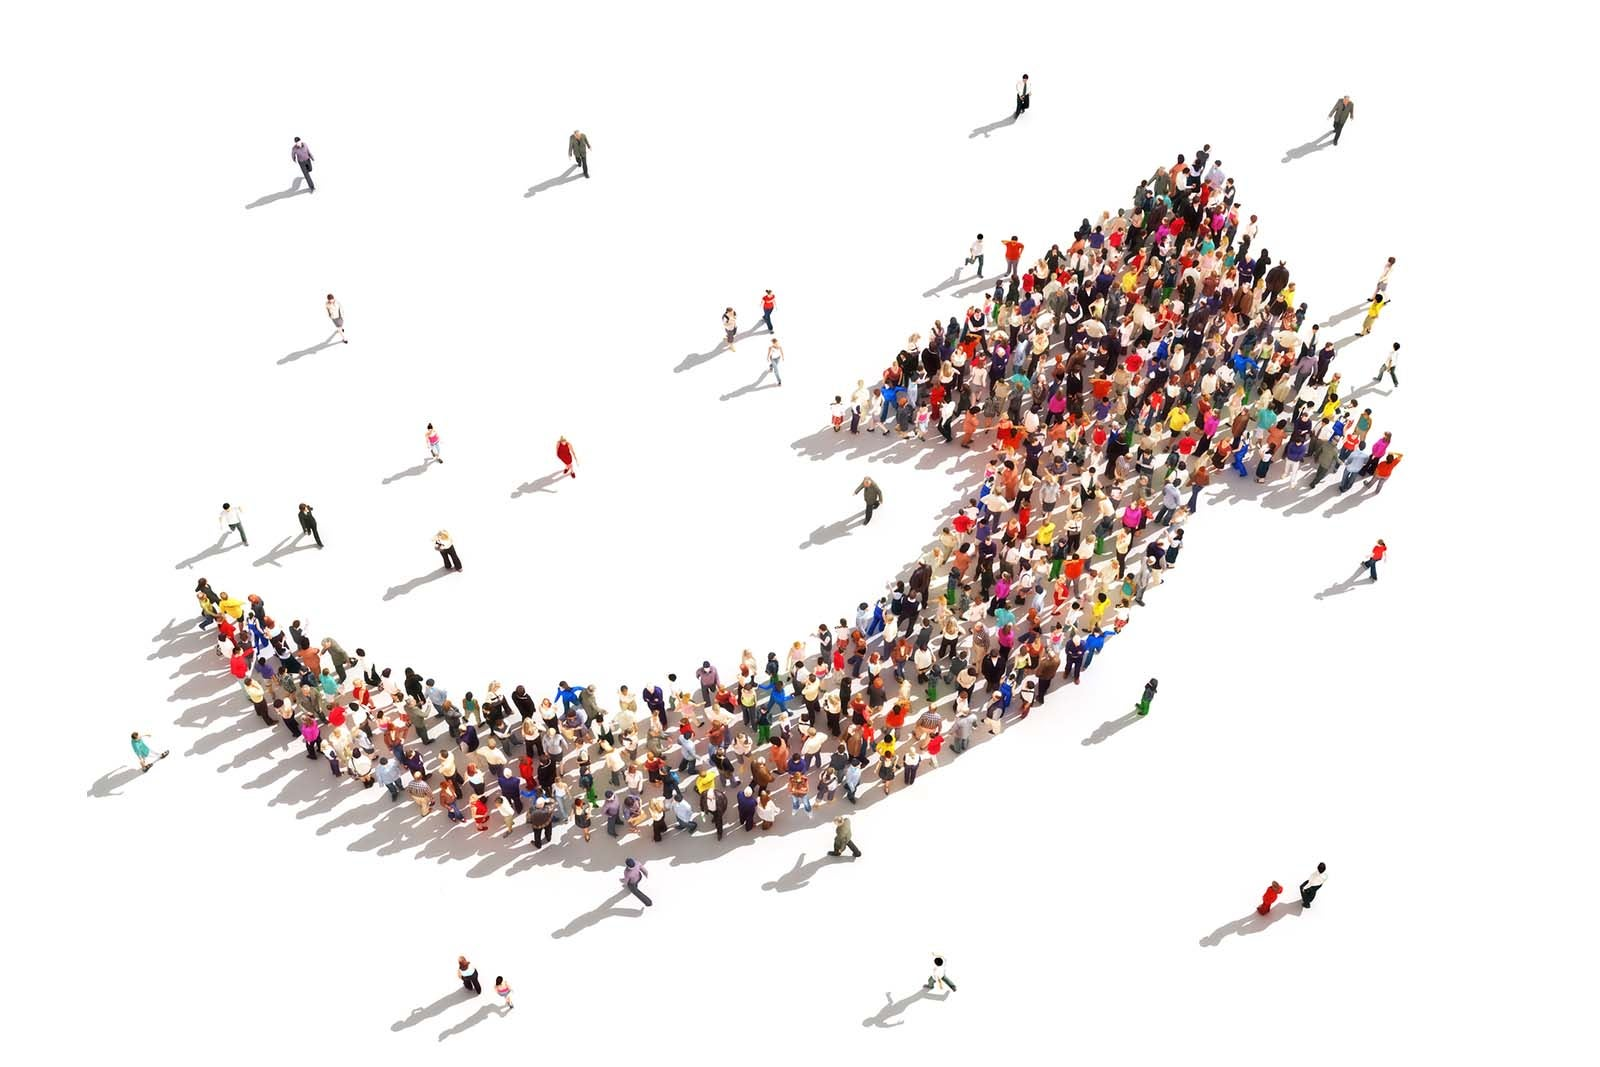 Large group of people forming an arrow, aerial view.